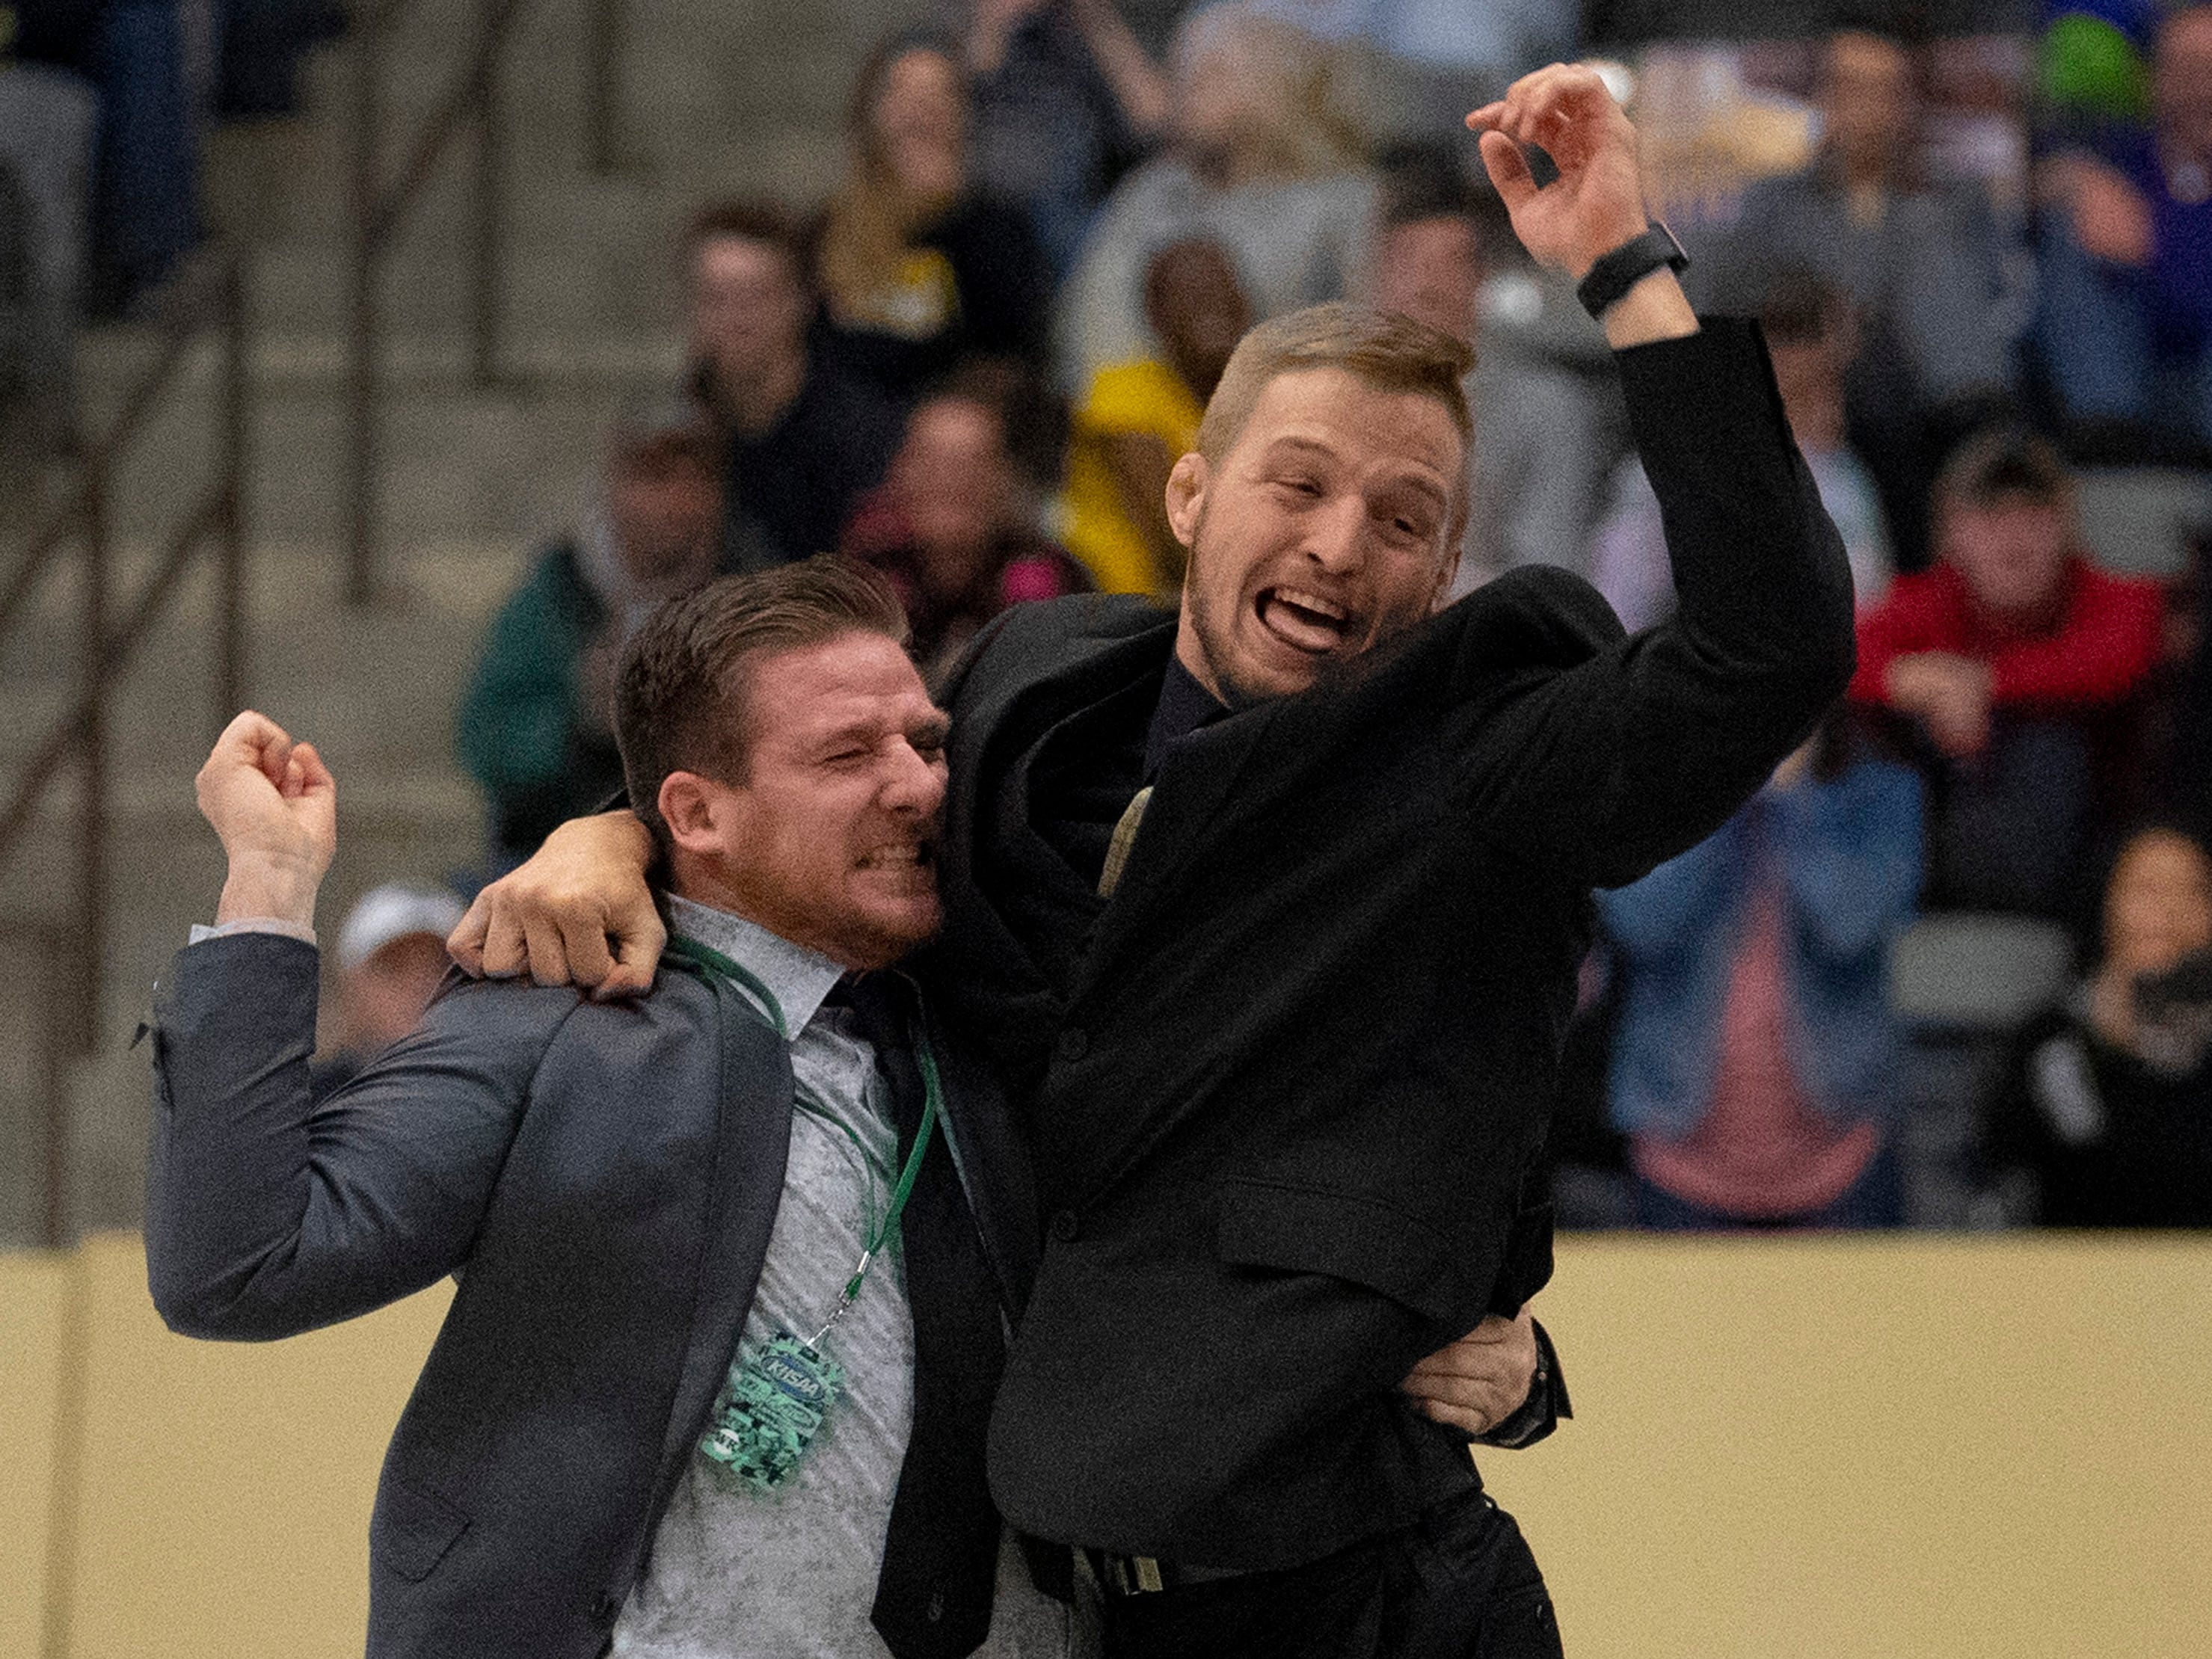 Boyle County coaches Seth Lucas, left, and Kyle Terry celebrate Jordan Bates state championship in the 138-pound category at the KHSAA State Wrestling Championships at the Alltech Arena in Lexington, Ky., Saturday night.